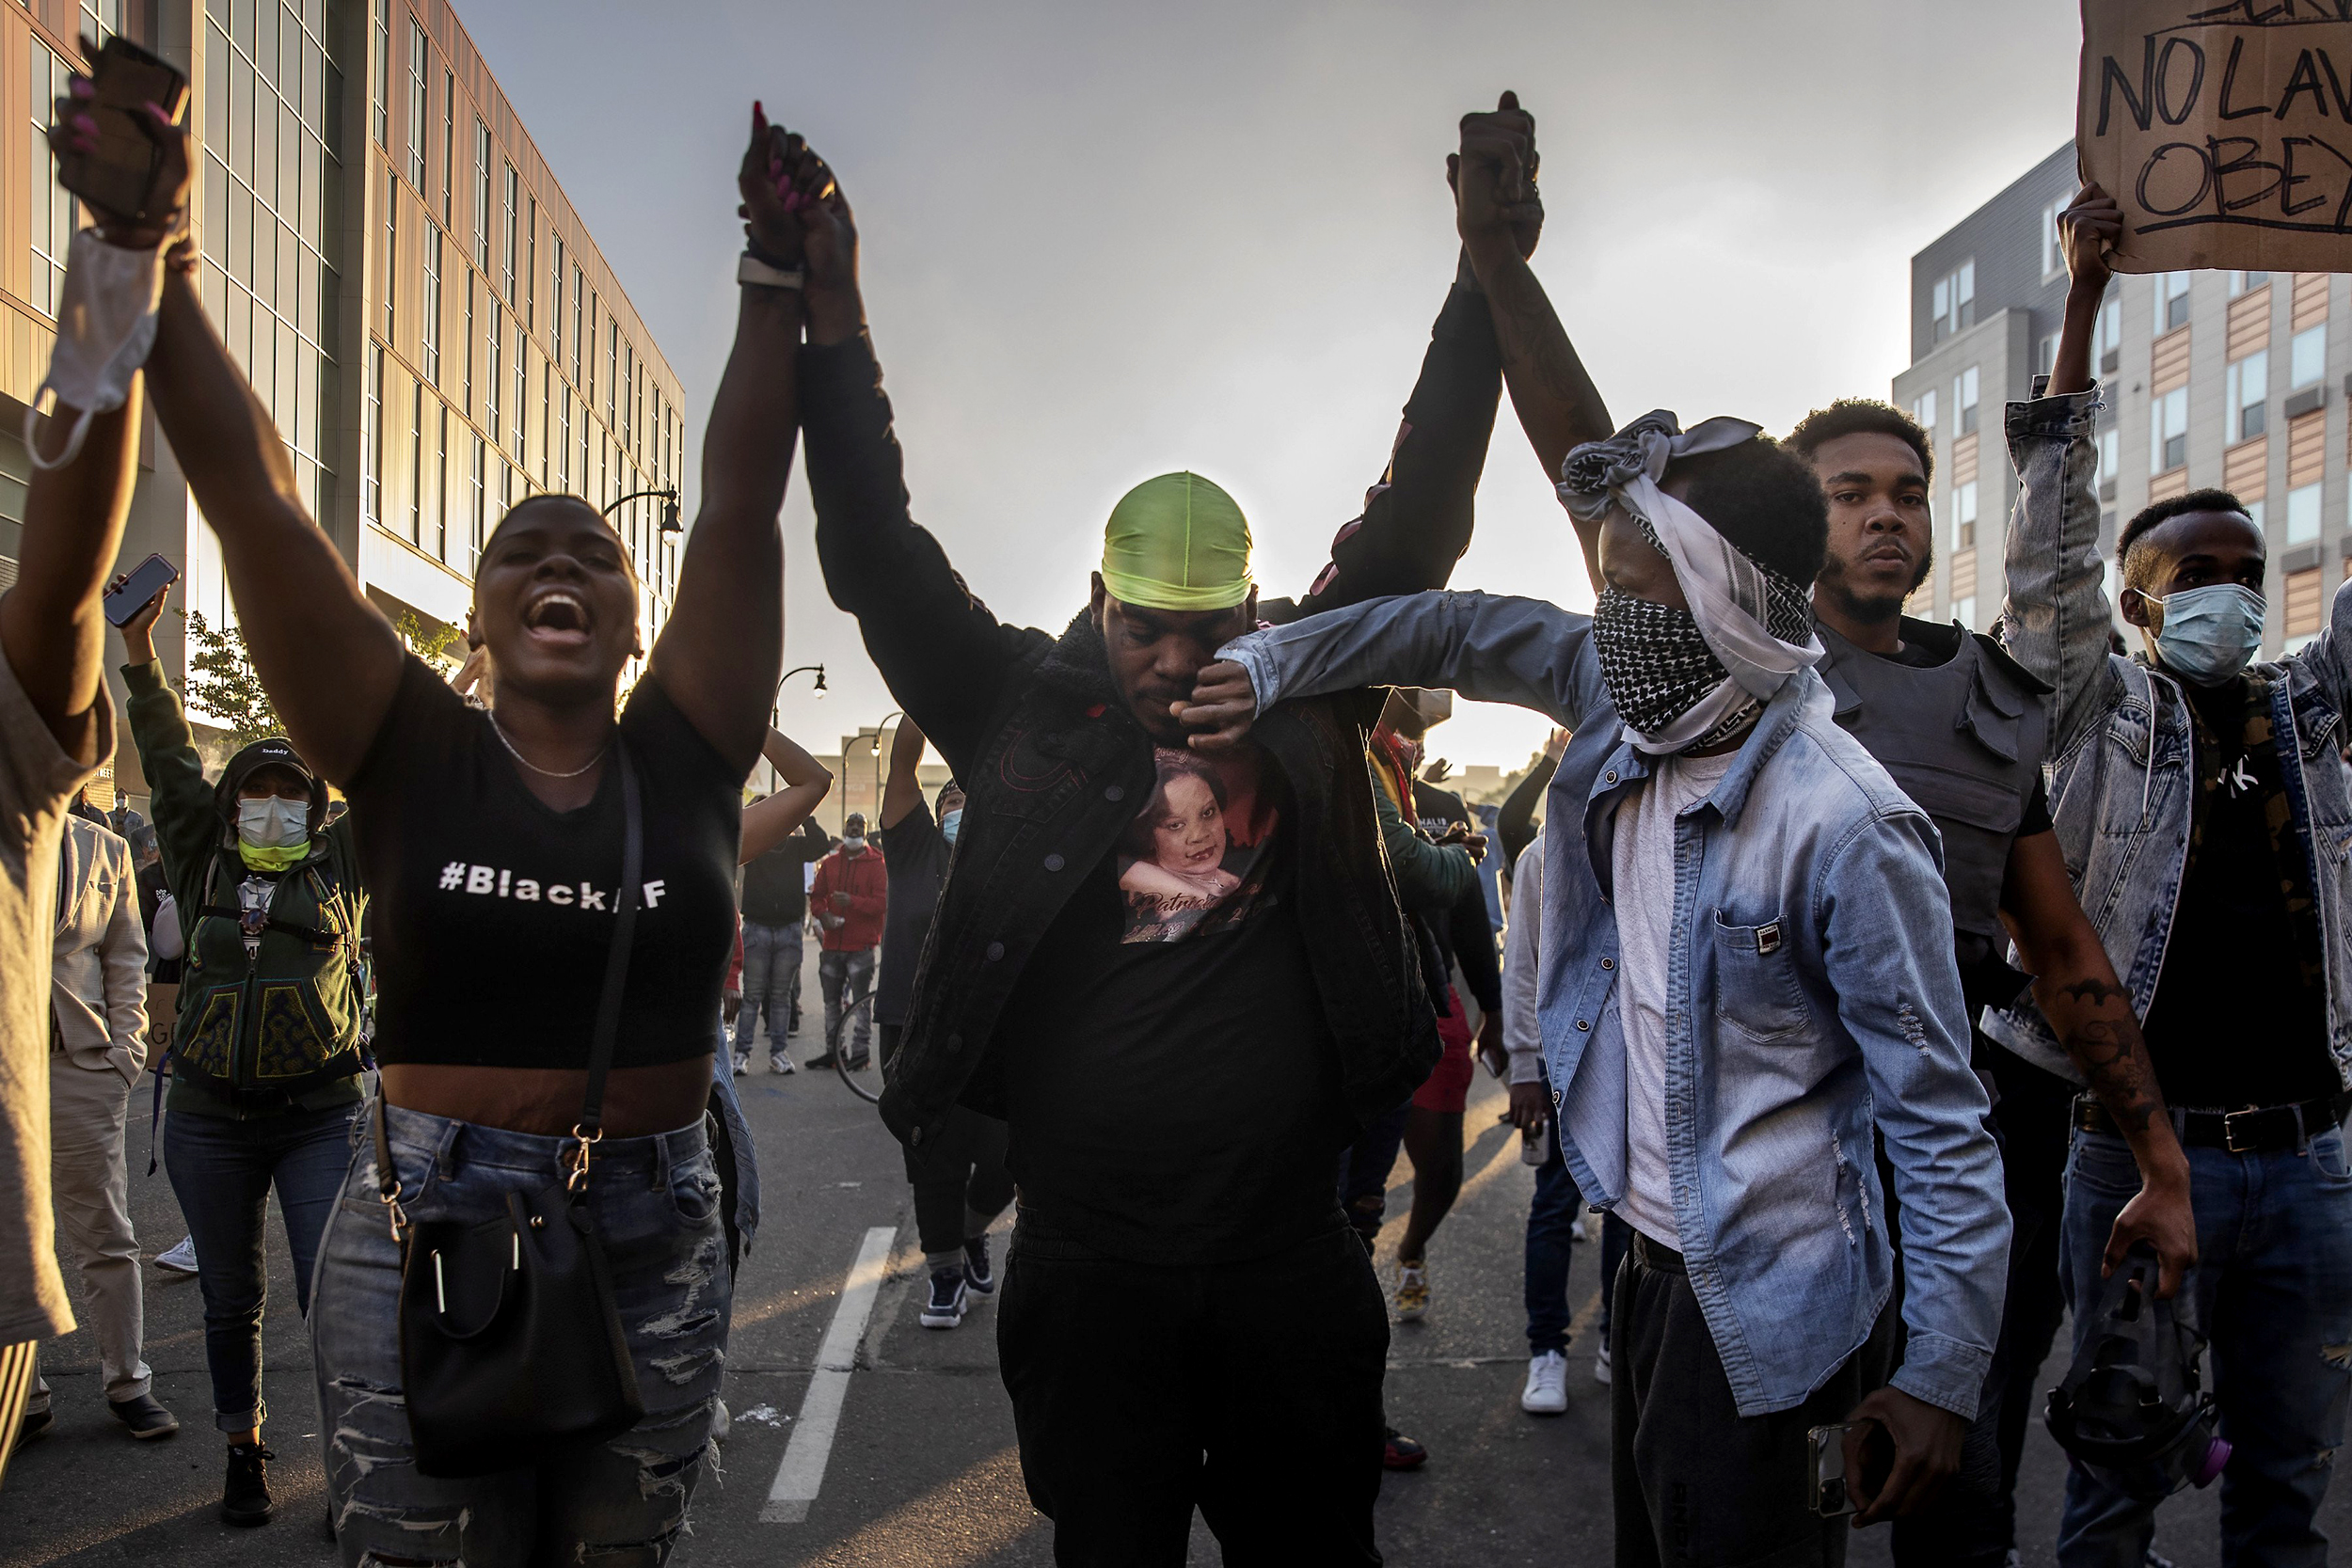 Decades of injustice and a pandemic are fueling 'a different kind of anger'